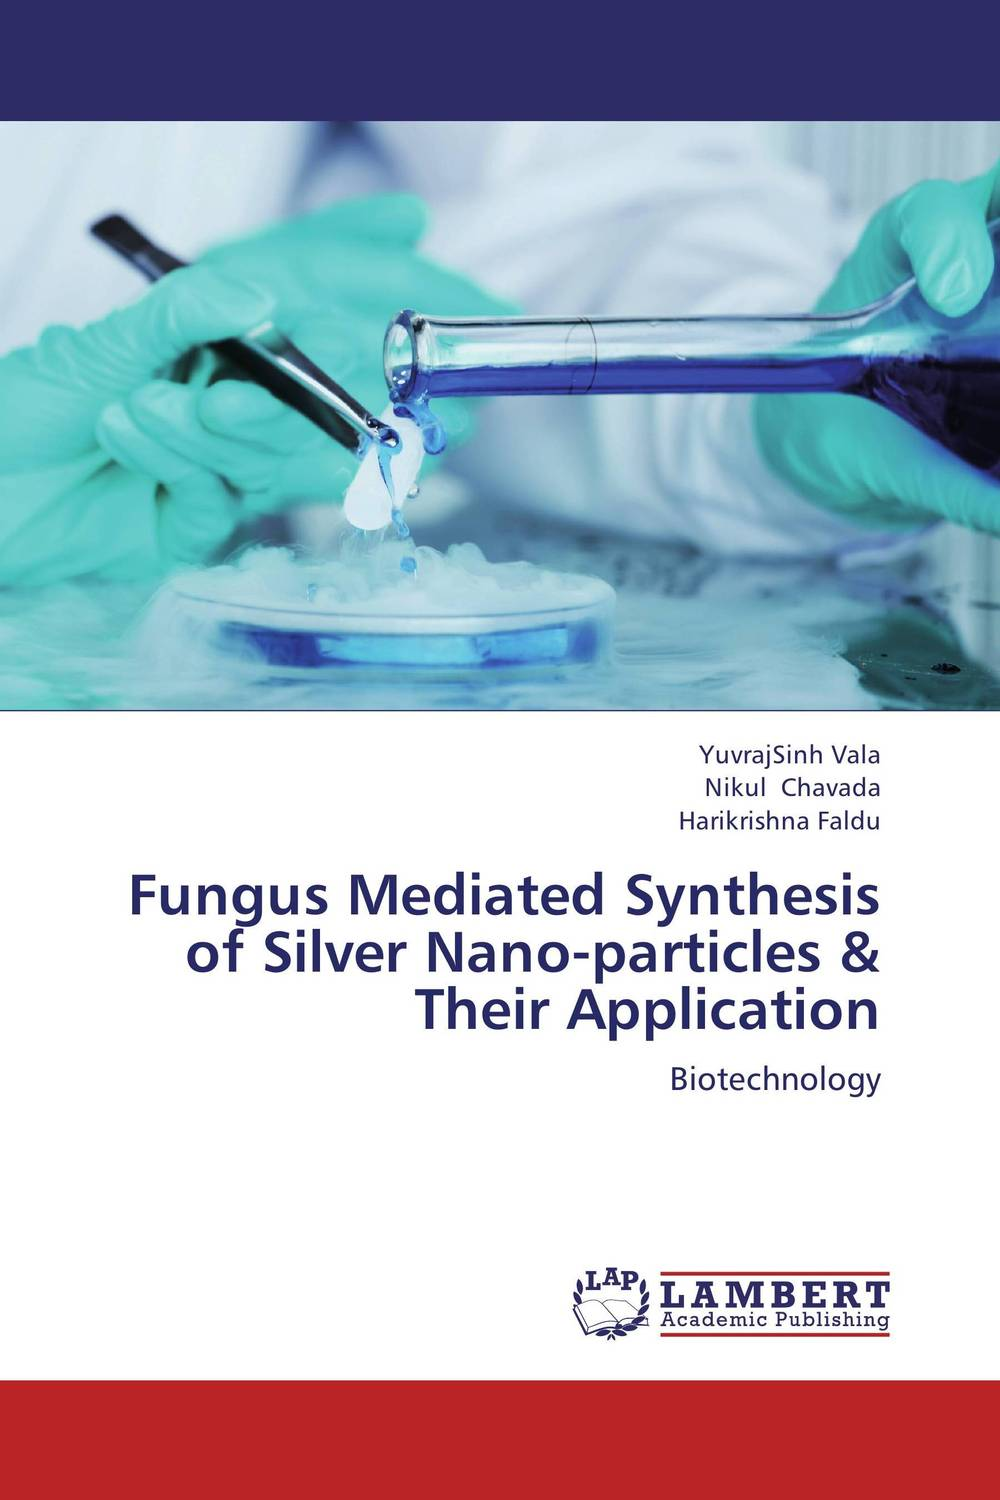 Fungus Mediated Synthesis of Silver Nano-particles & Their Application utilization of nano particles to impart functionality to textiles